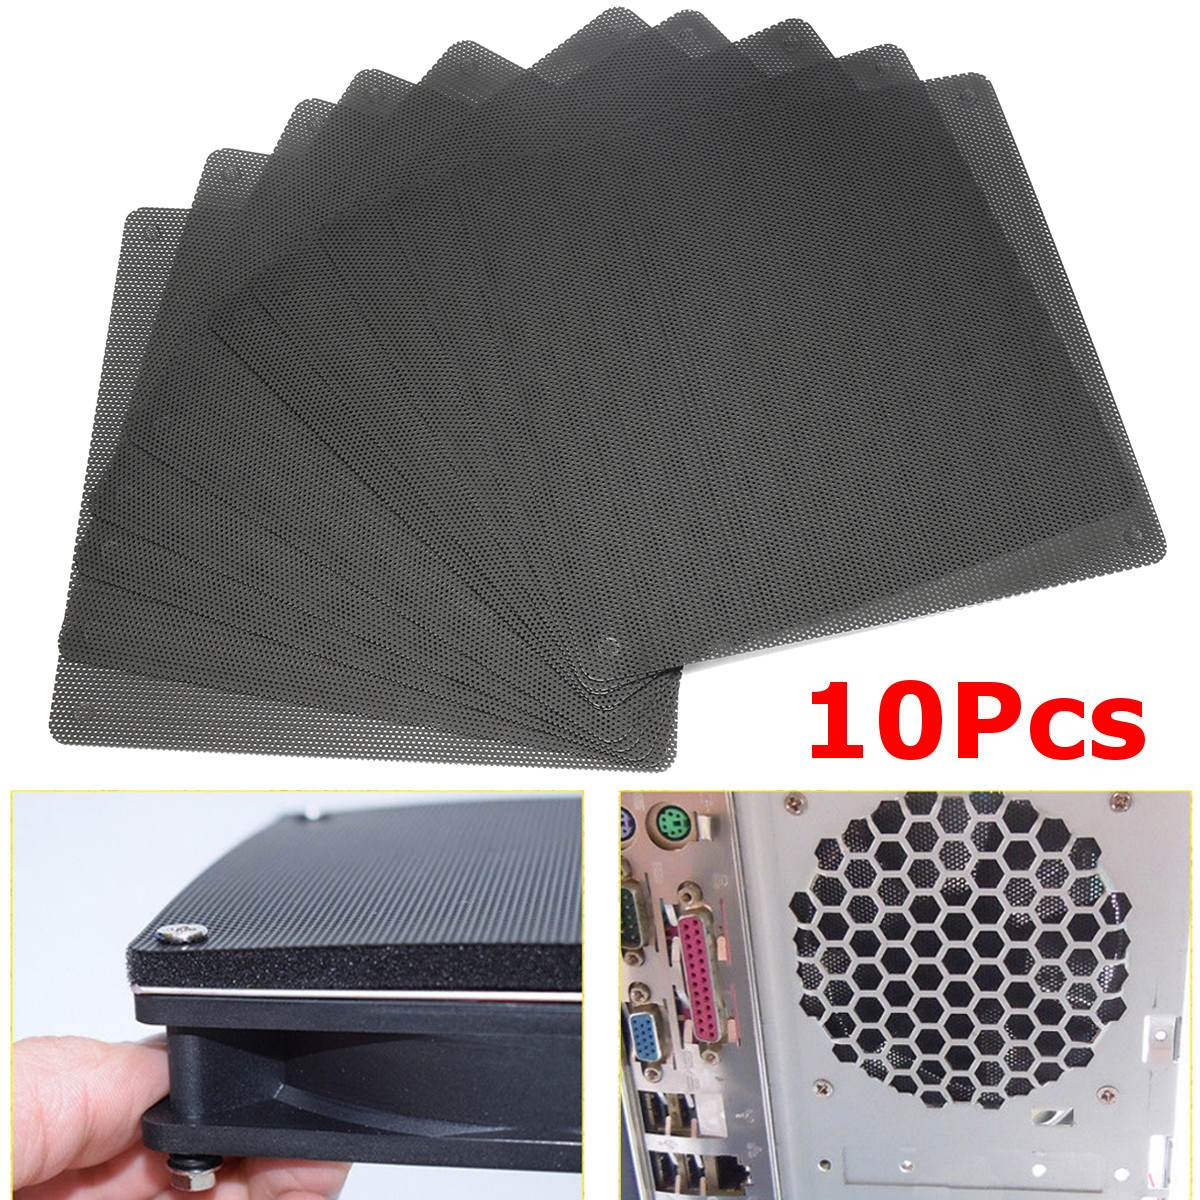 10pcs 14x14cm Black Pvc Computer Pc Cooler Fan Case Cover Dust Filter Mesh Computer Fan Cooling Cuttable Mesh Accessories Kit